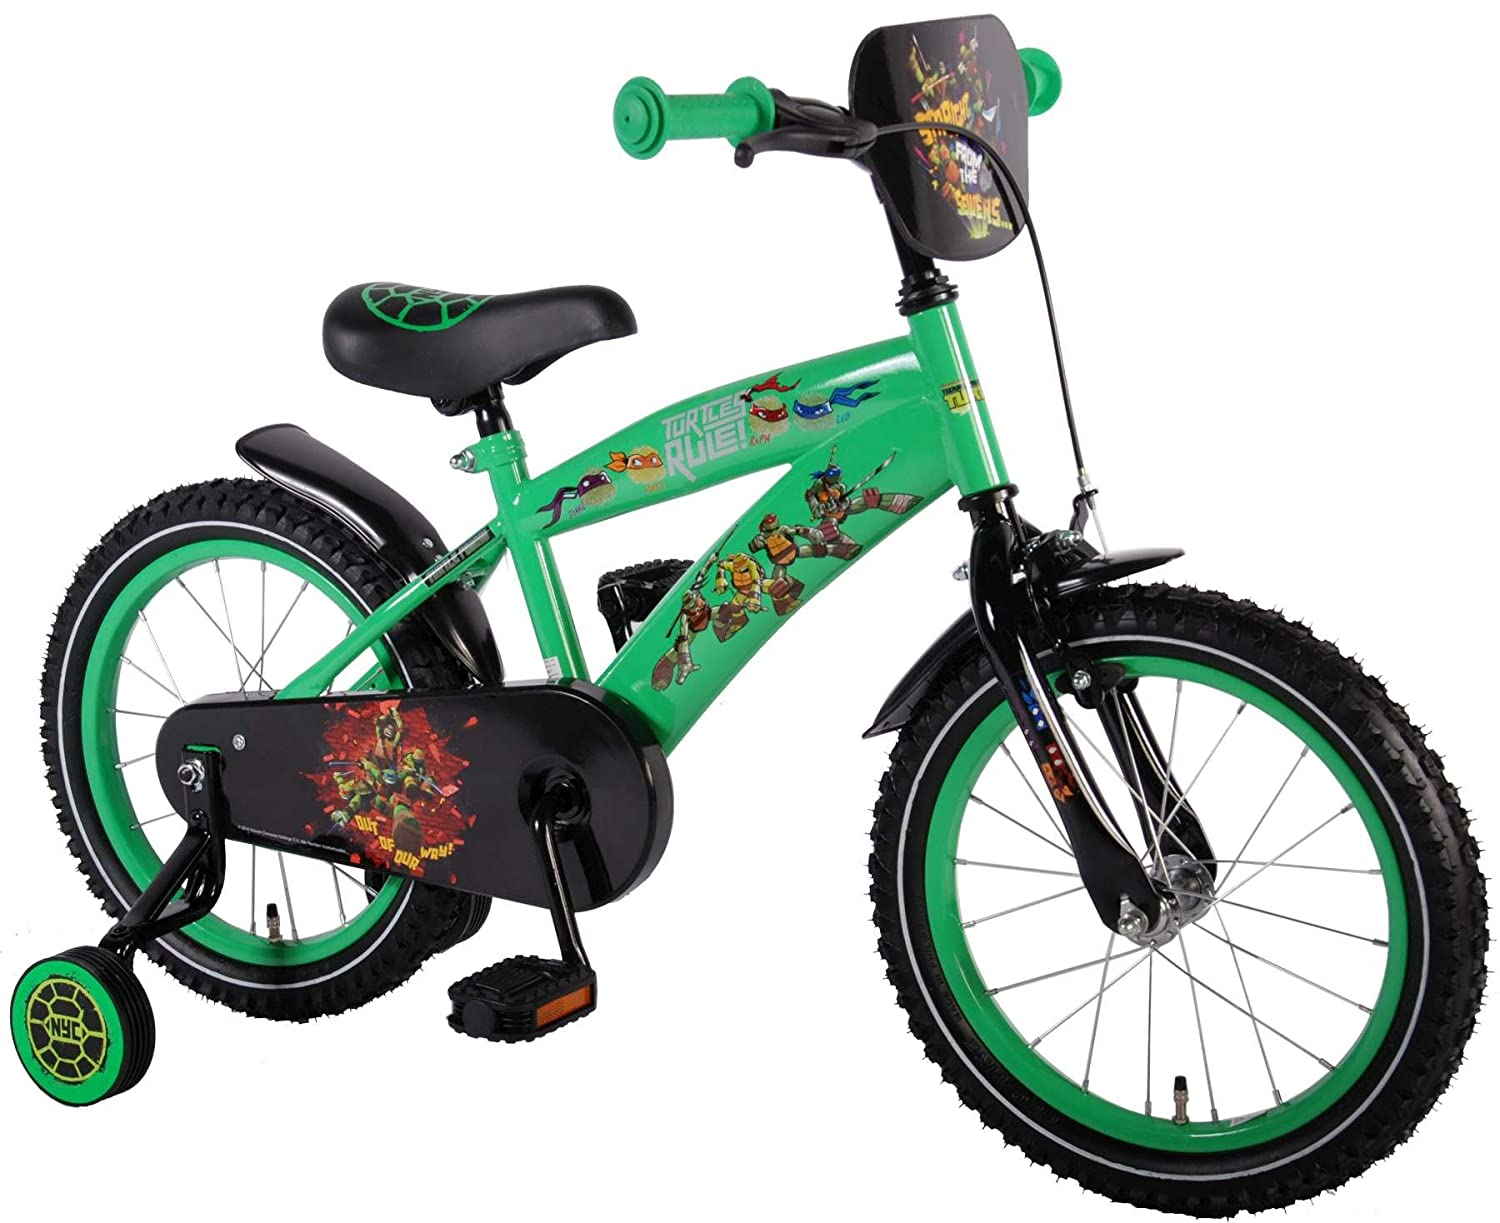 38ab8d6dcfe Ninja Turtles Boys Bike Bicycle Cross 16 inch Turtle Rule boys bicycle:  Amazon.co.uk: Sports & Outdoors